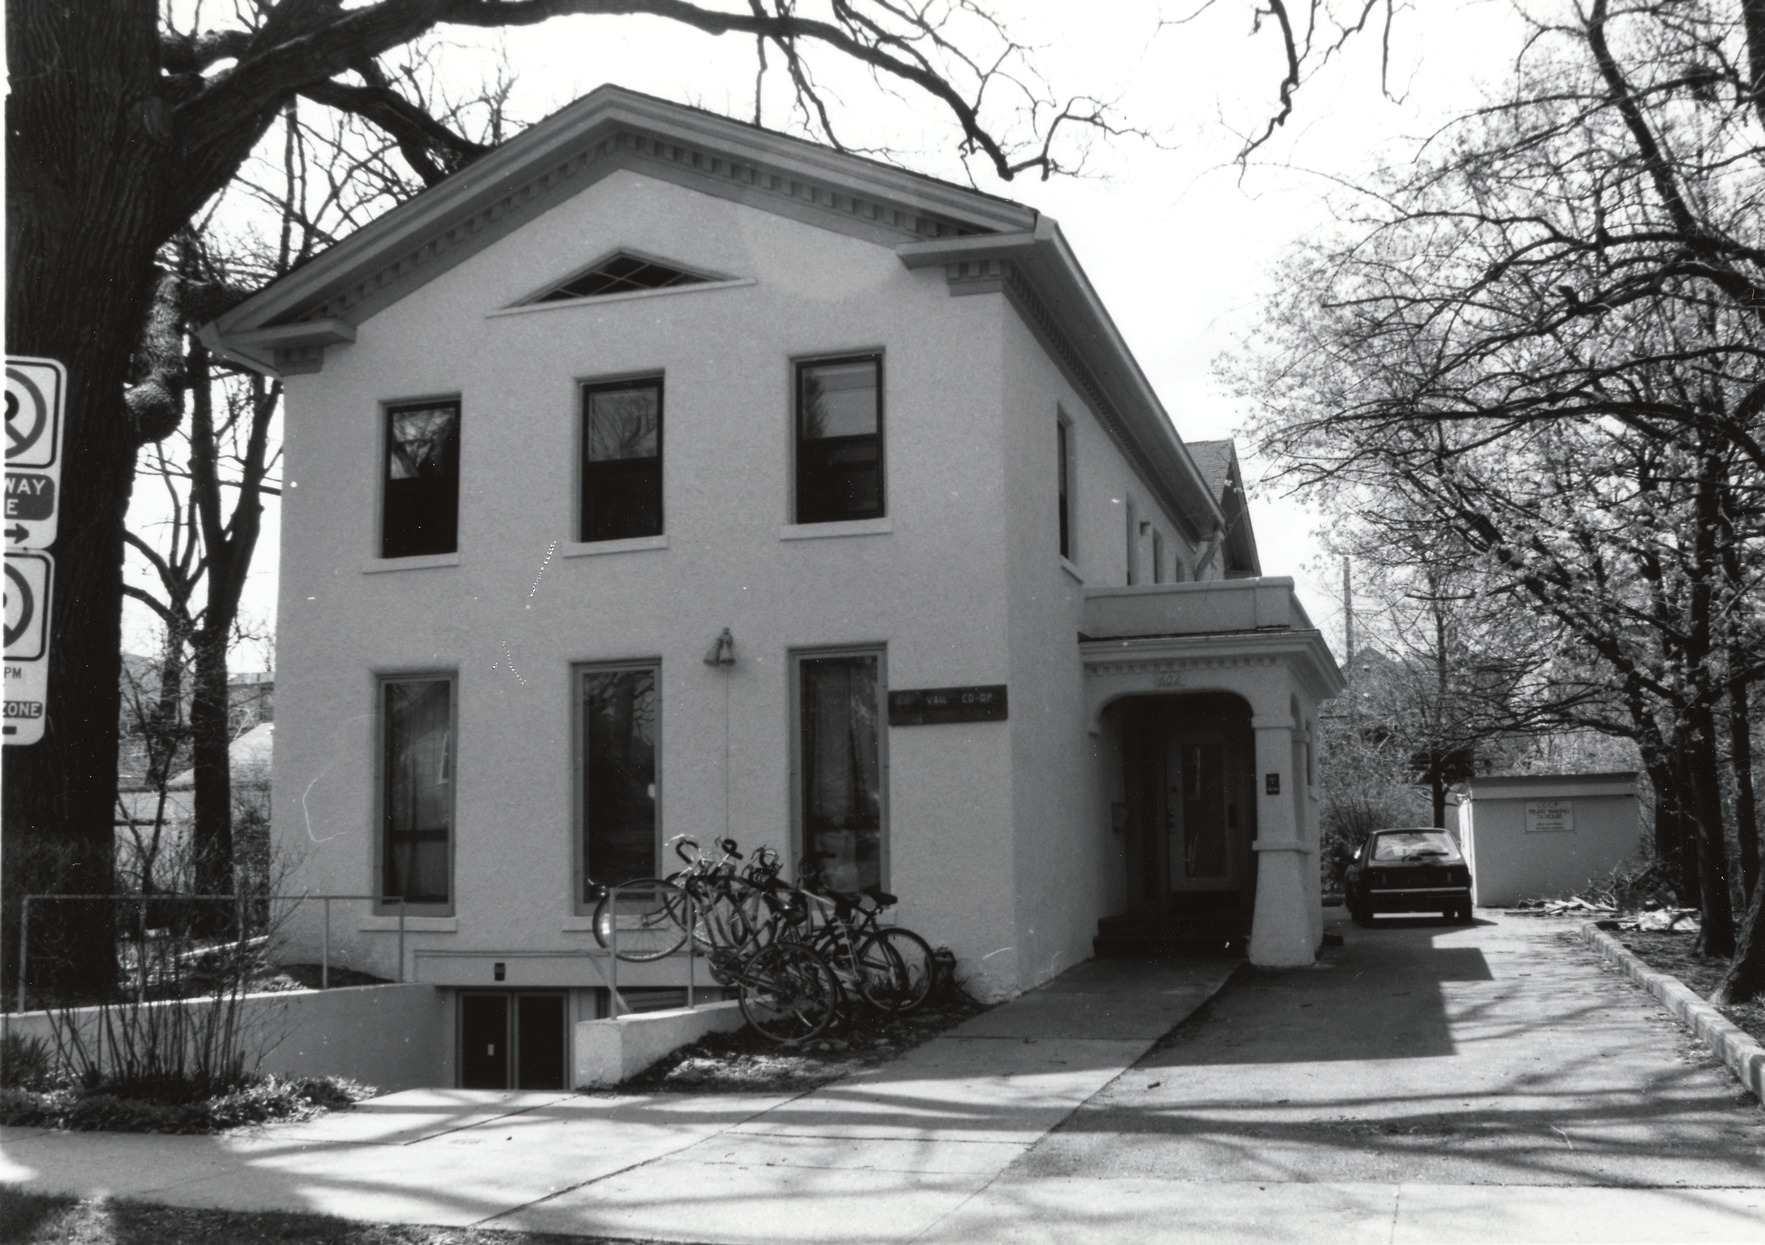 Thomas and Margaret Mitchell House, (Gregory House) 1848 image